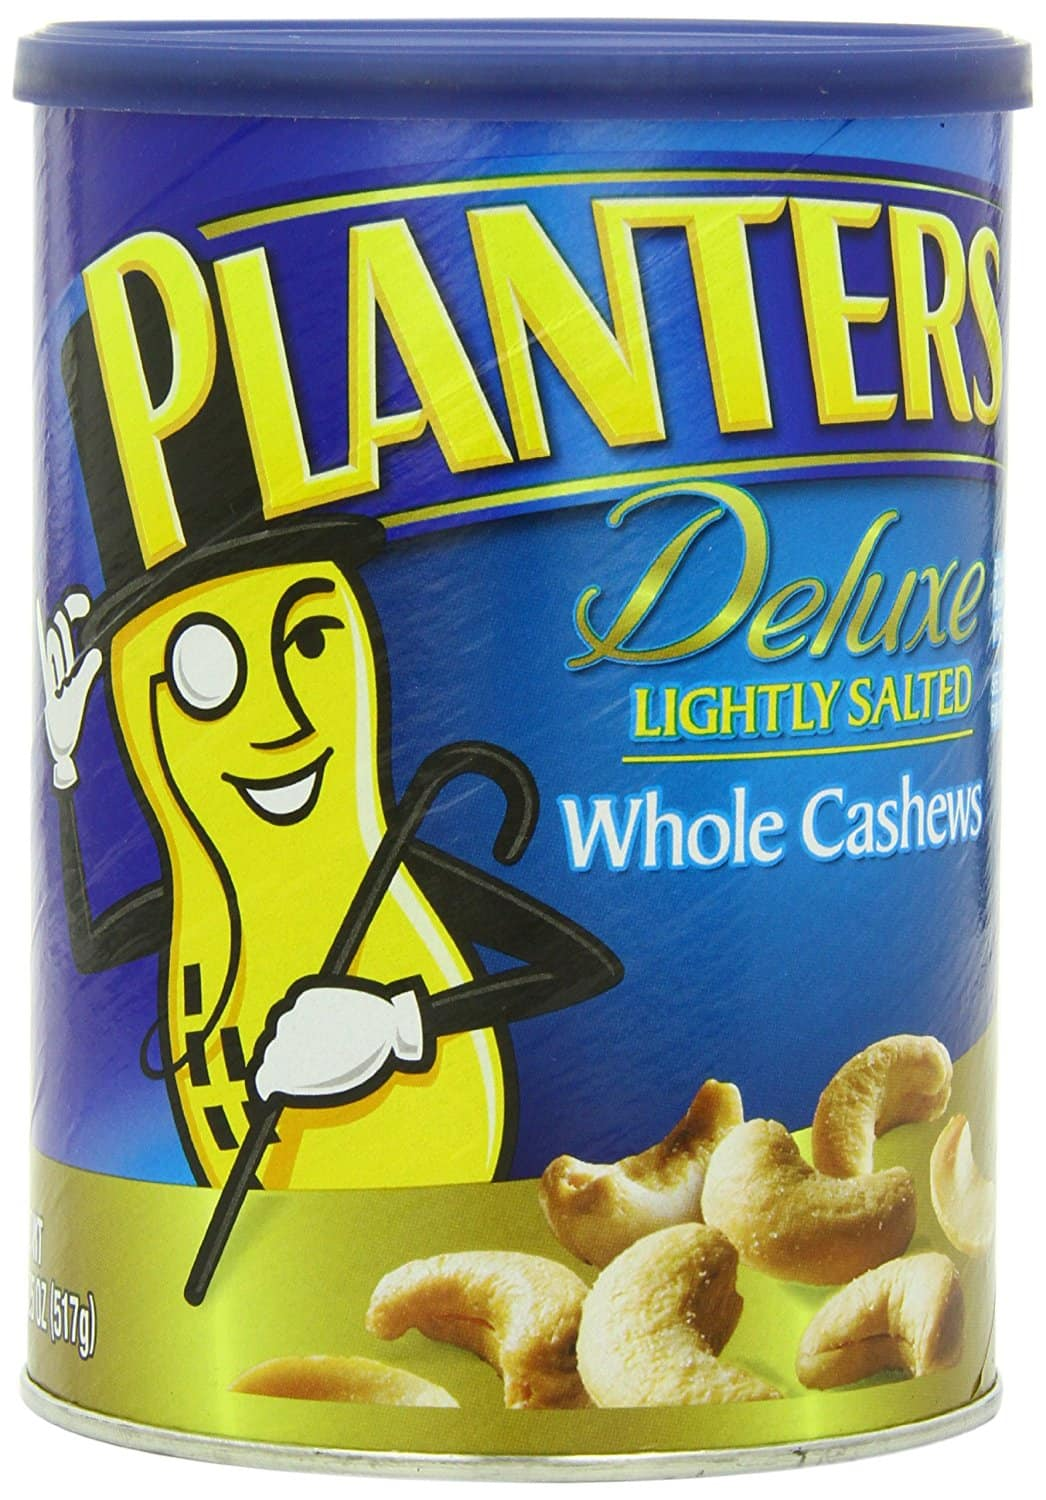 18.25oz Planters Deluxe Whole Cashews (Lightly Salted)  $6.40 + Free Shipping